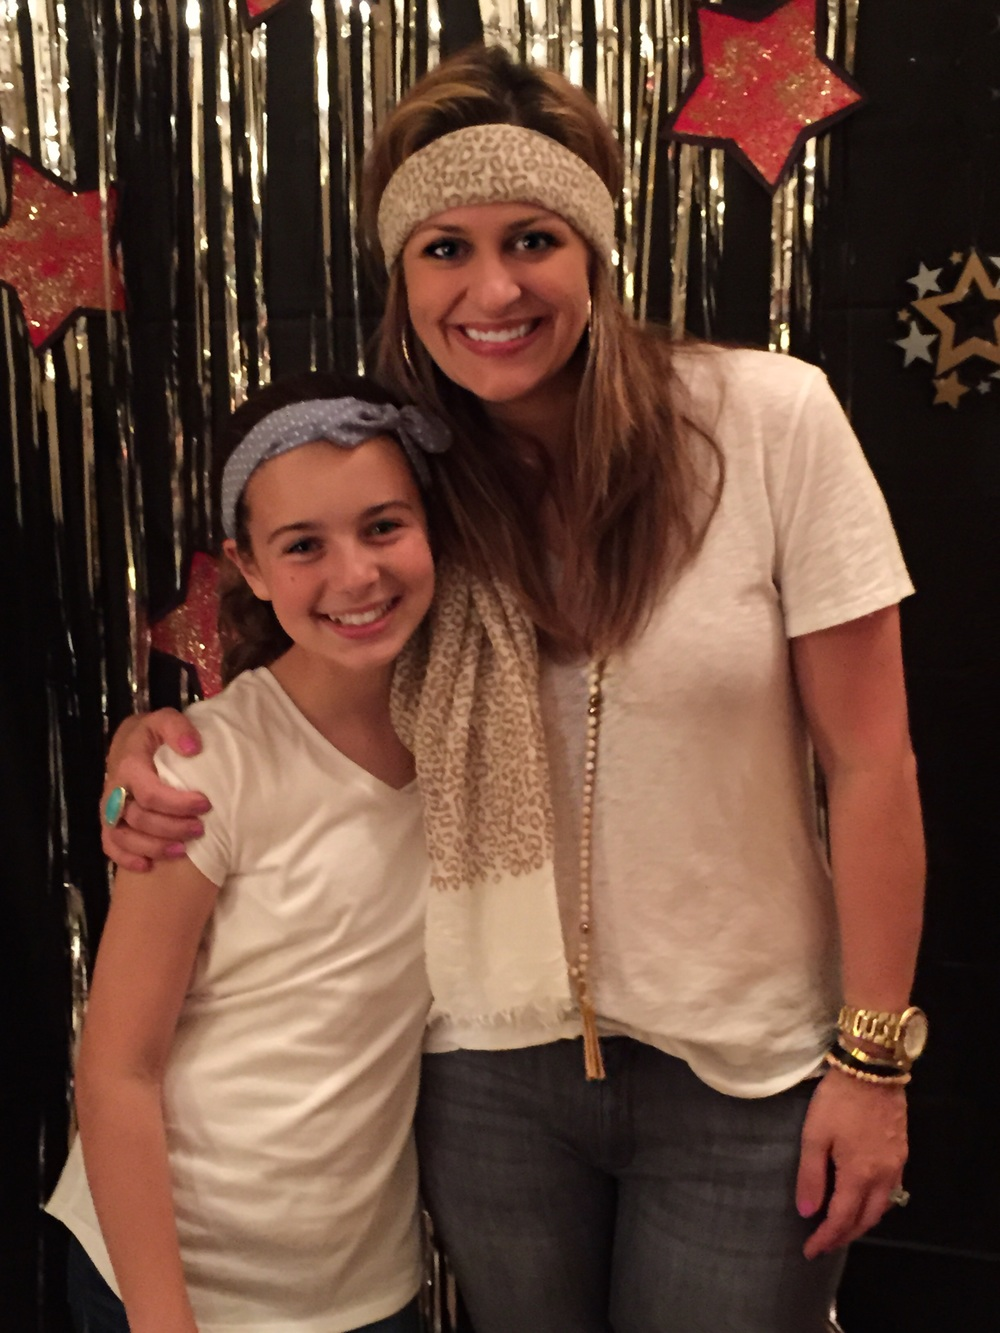 The birthday girl! Her headband:  Forever 21  Tee:  Rag&Bone  Jeans:  DL1961  Necklace:  Frasier Sterling